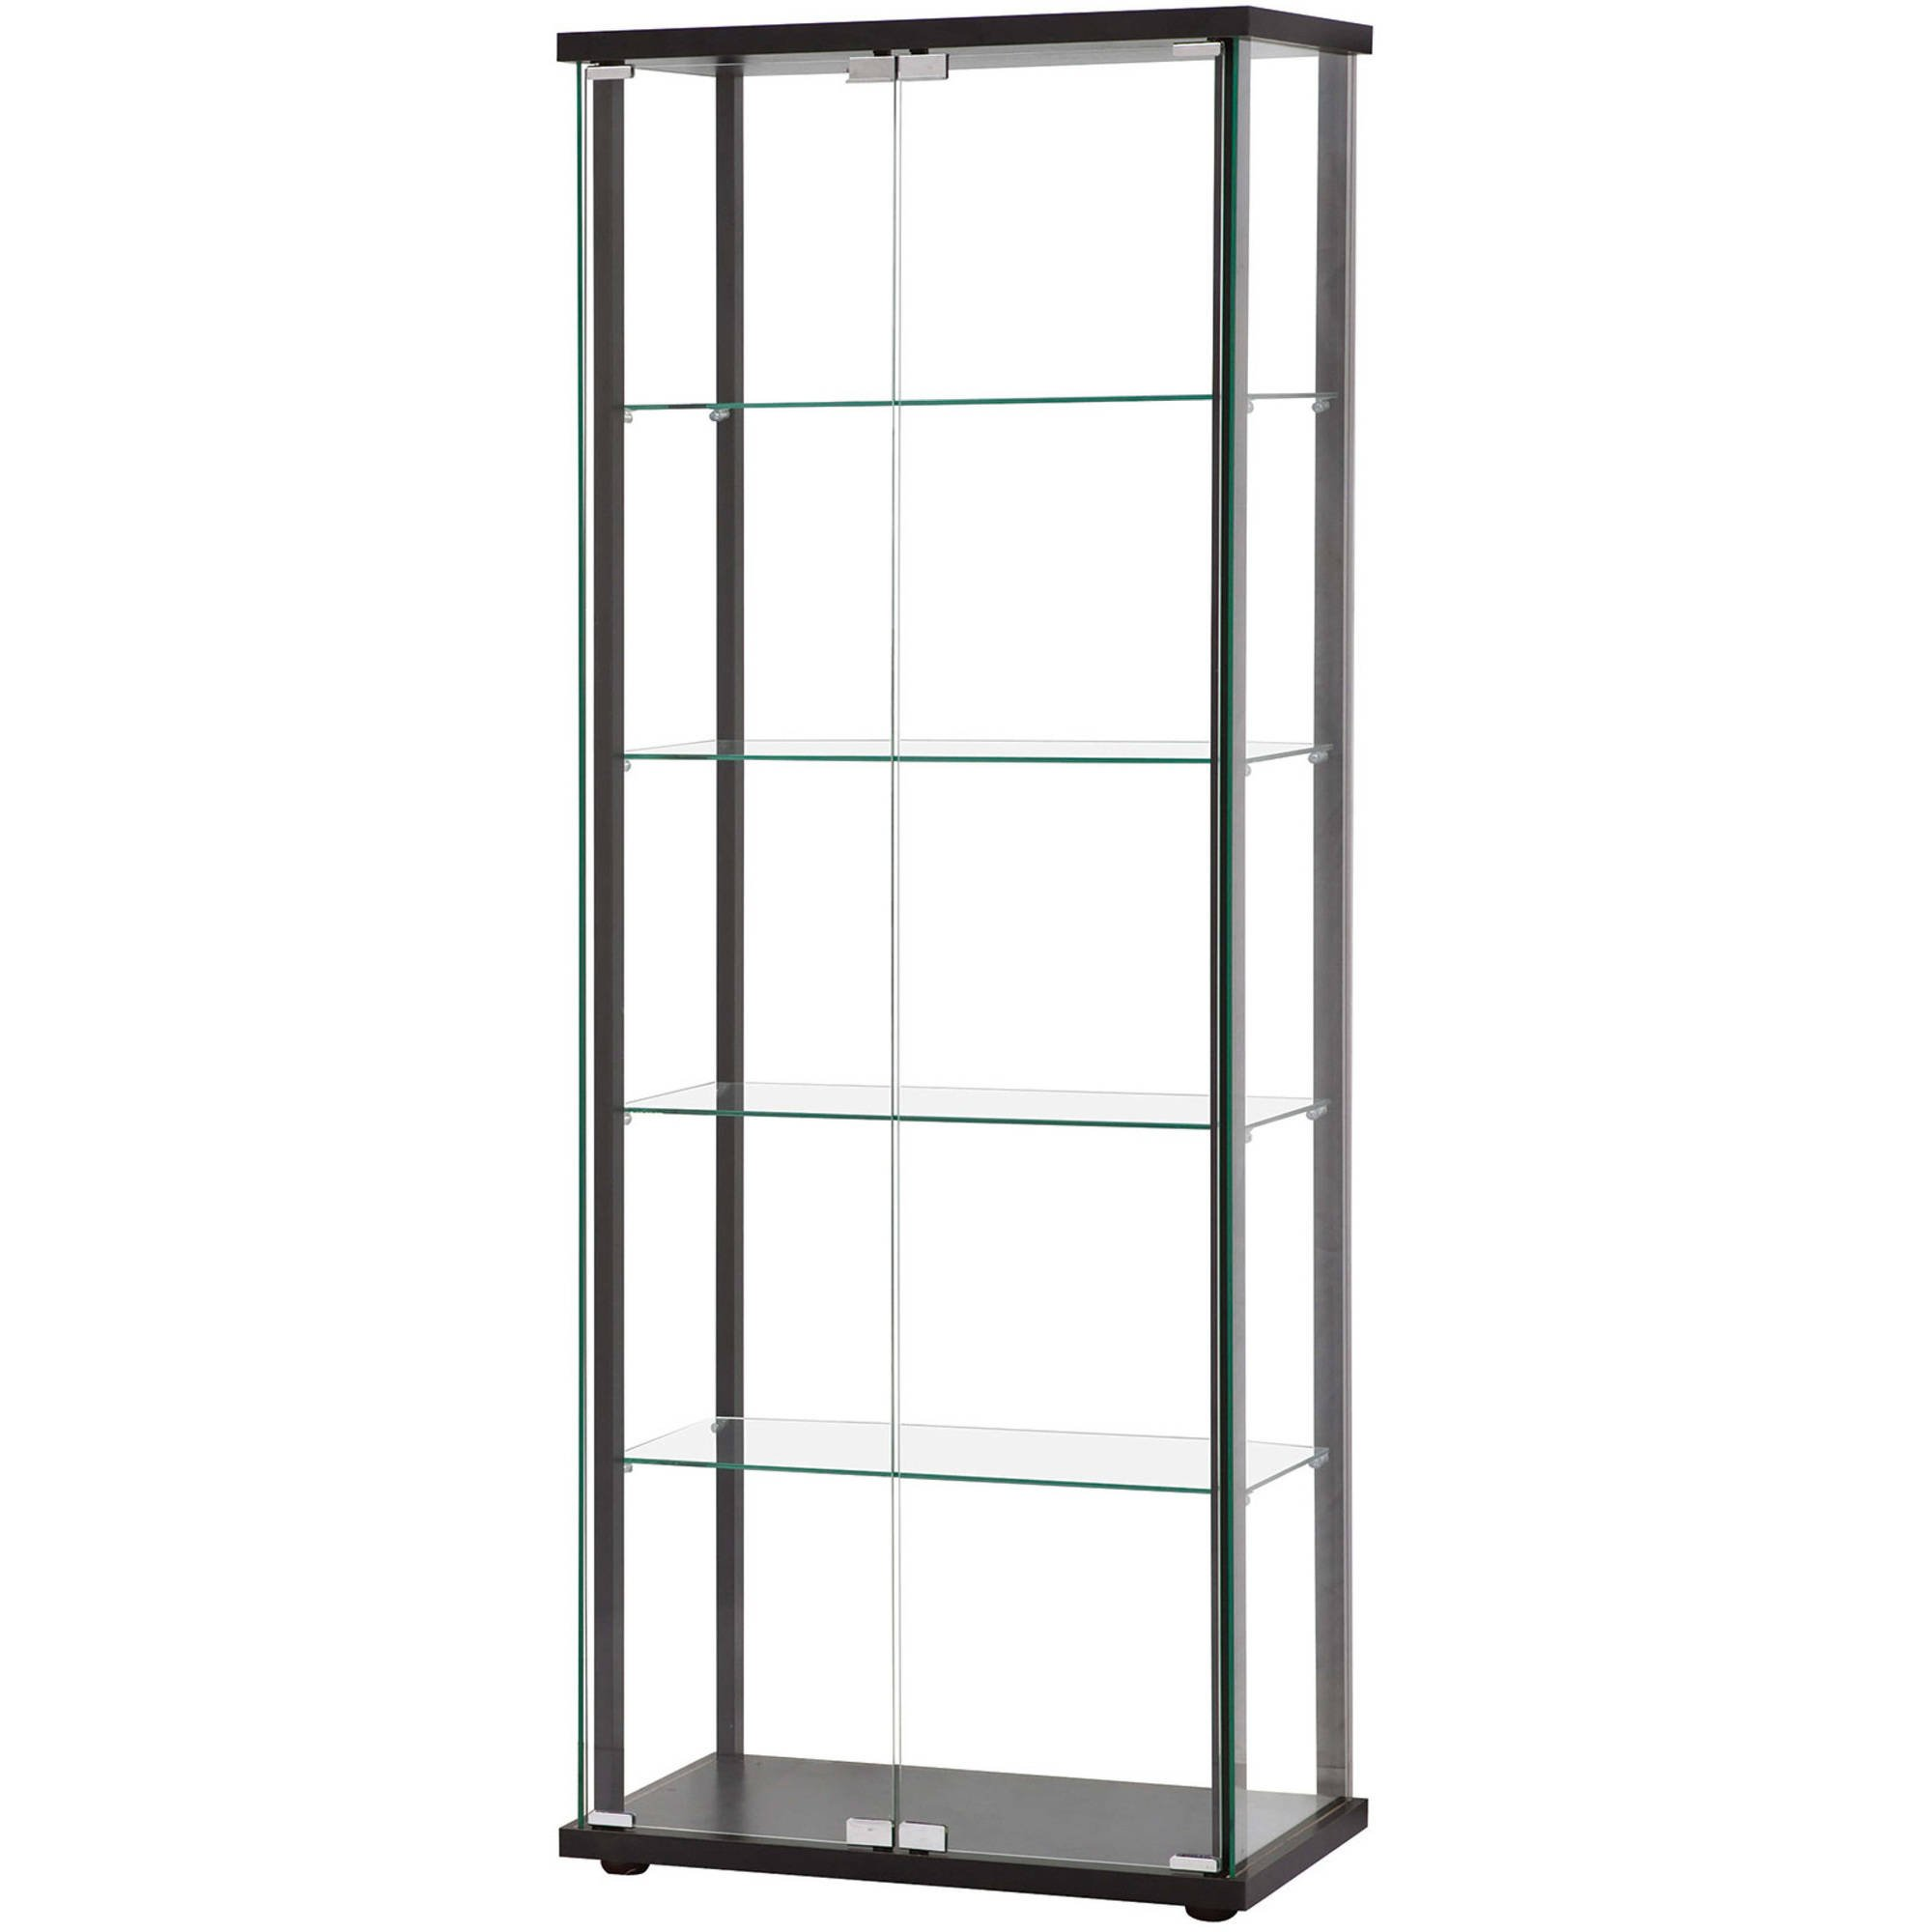 Minimalistic Glass China Cabinet with Clear See-Through Design, Five Tempered Glass Shelves, Simple and Elegant Black Wood Frame, Push-to-Open Door Mechanism, Rectangle Shape + Expert Home Guide